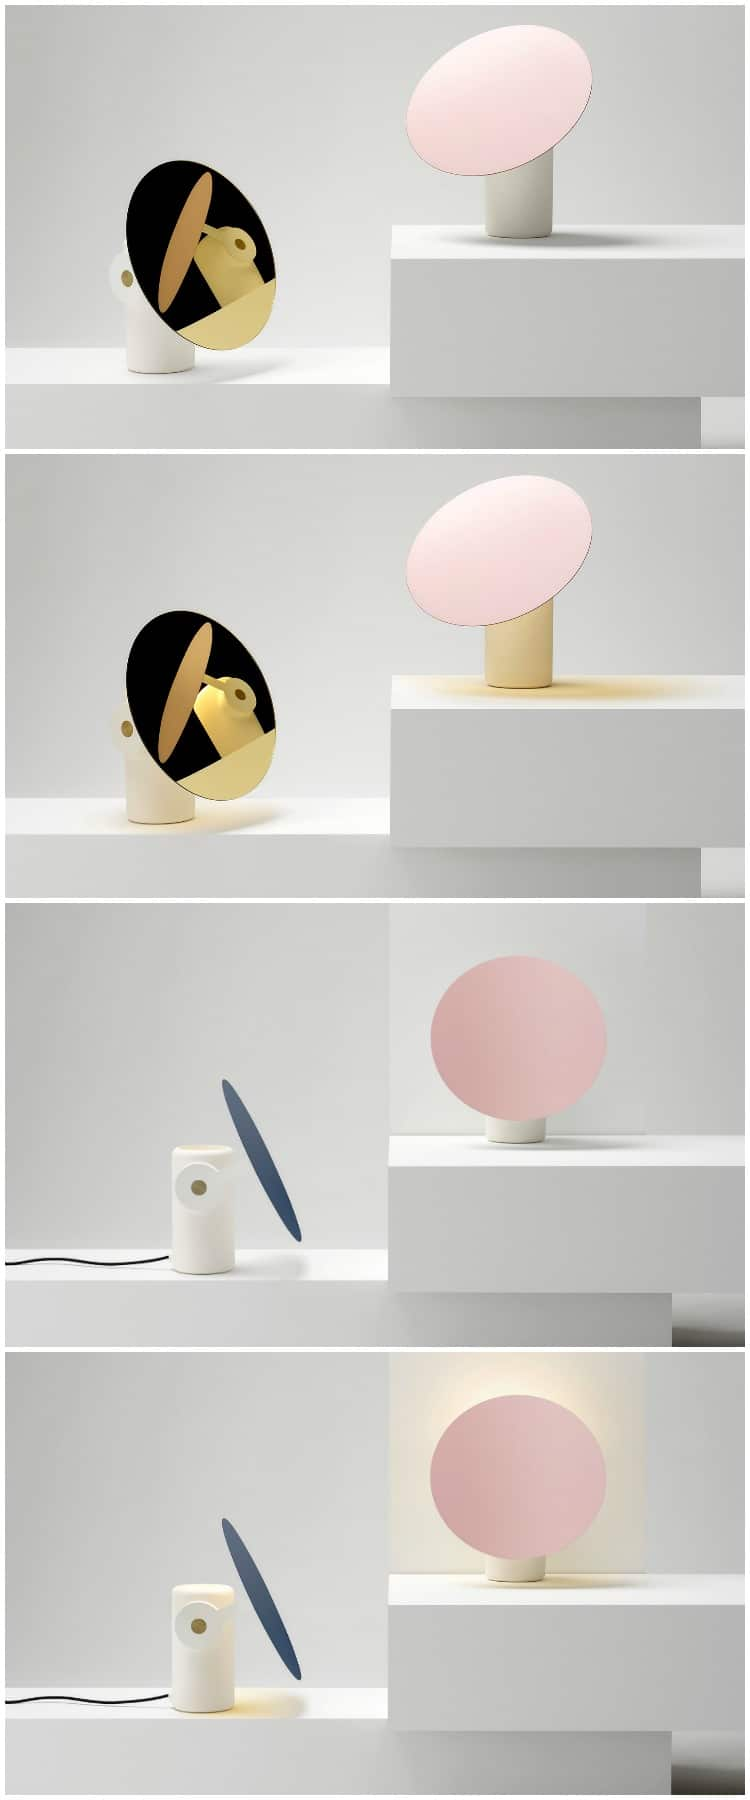 A circular motif is used throughout Polar defining its minimal operative form. The product utilises a unique magnetically attached arm to allow the disc to rotate around the body directing or shading light. A friction disc in combination with magnets molded into the ceramic body allows the arm to snap into place and to function. #concept #desklamp #gold #lamp #lighting #lightingdesign